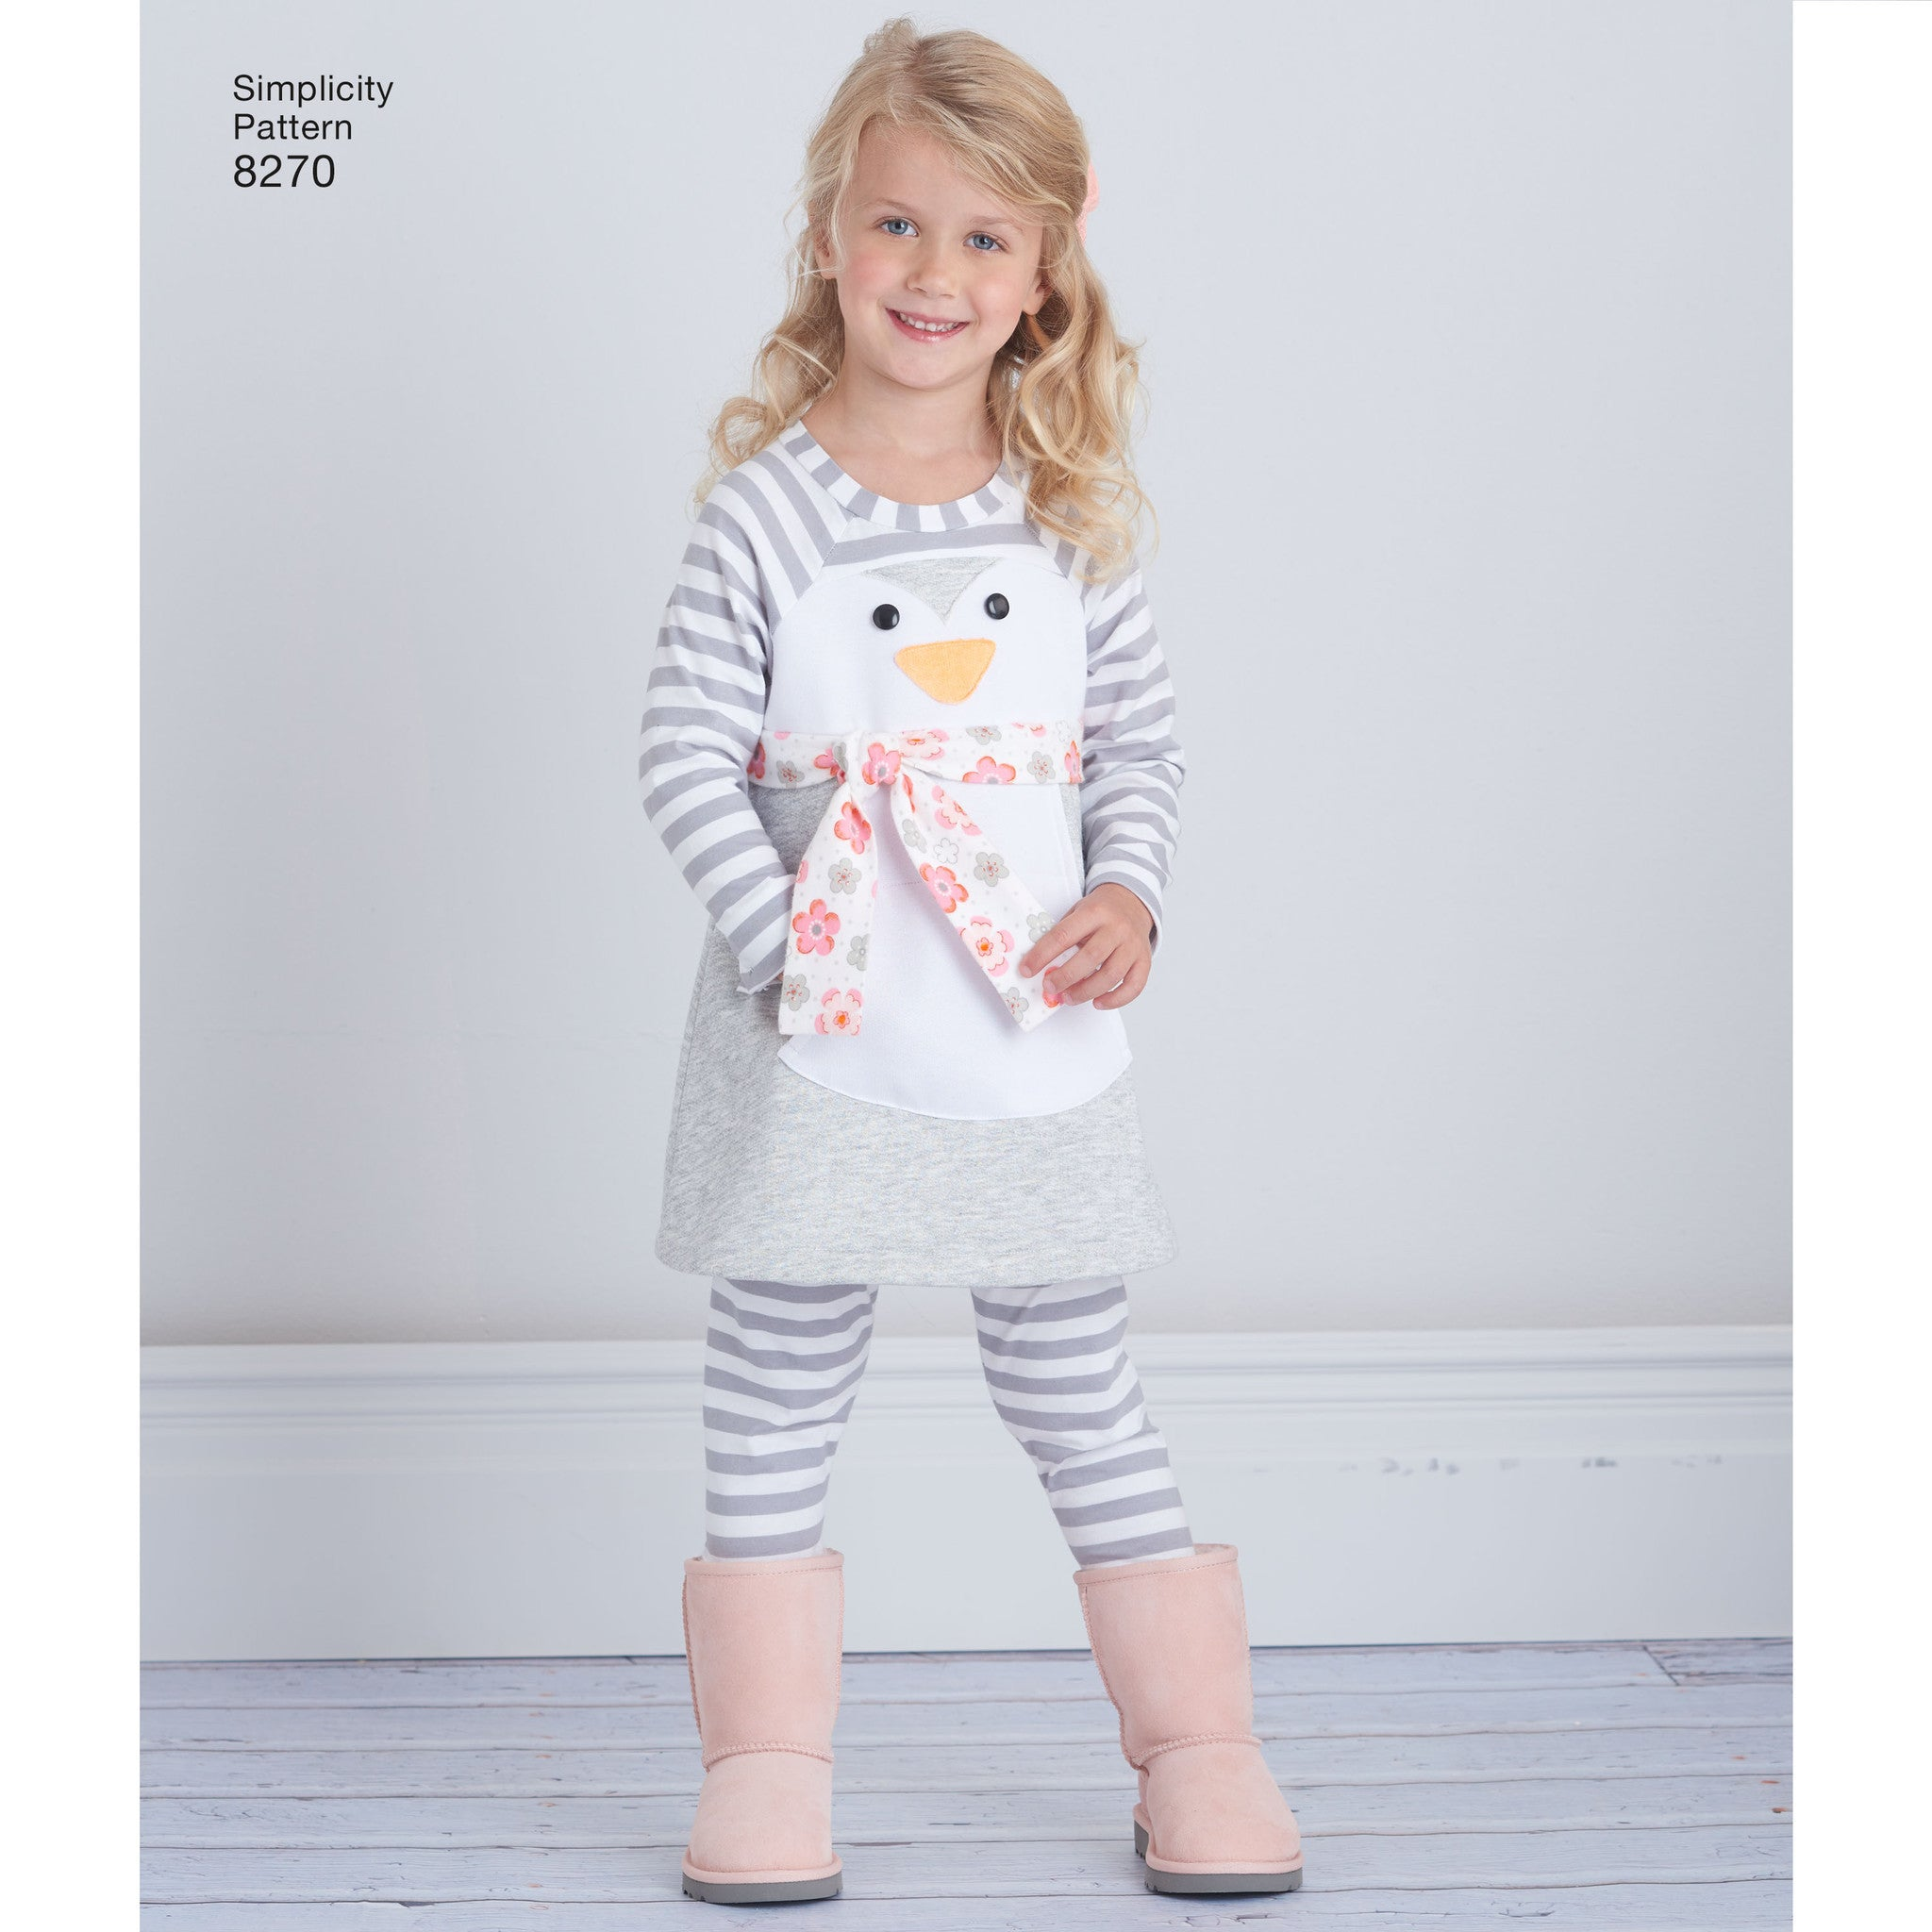 S8270 Toddlers' Knit Sportswear from Ruby Jean's Closet